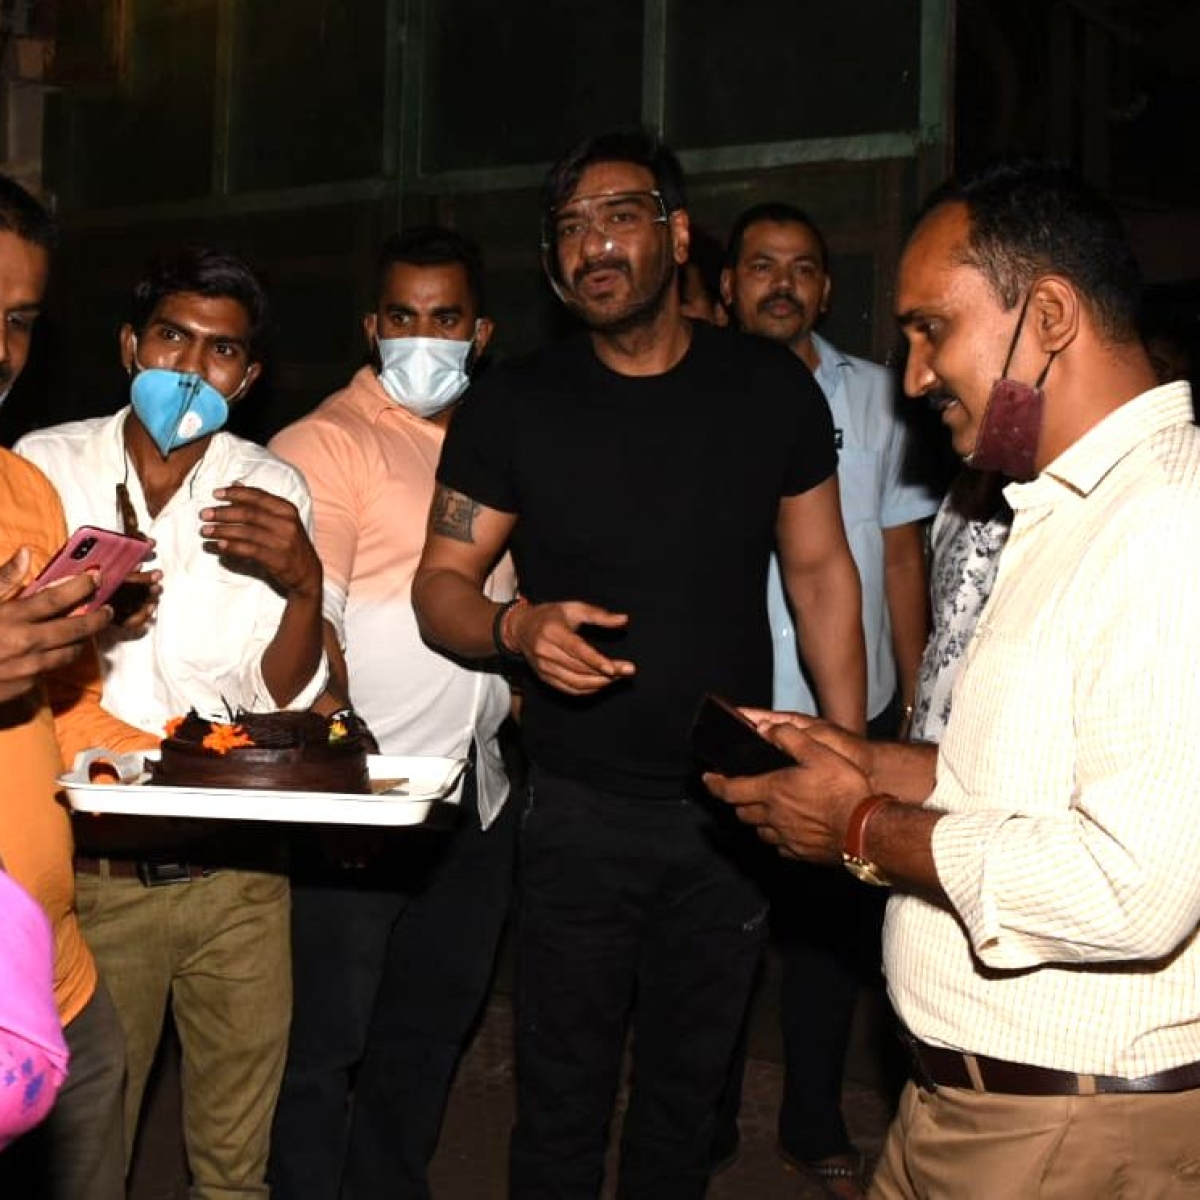 Amid night curfew, Ajay Devgn celebrates birthday with fans outside his Mumbai residence